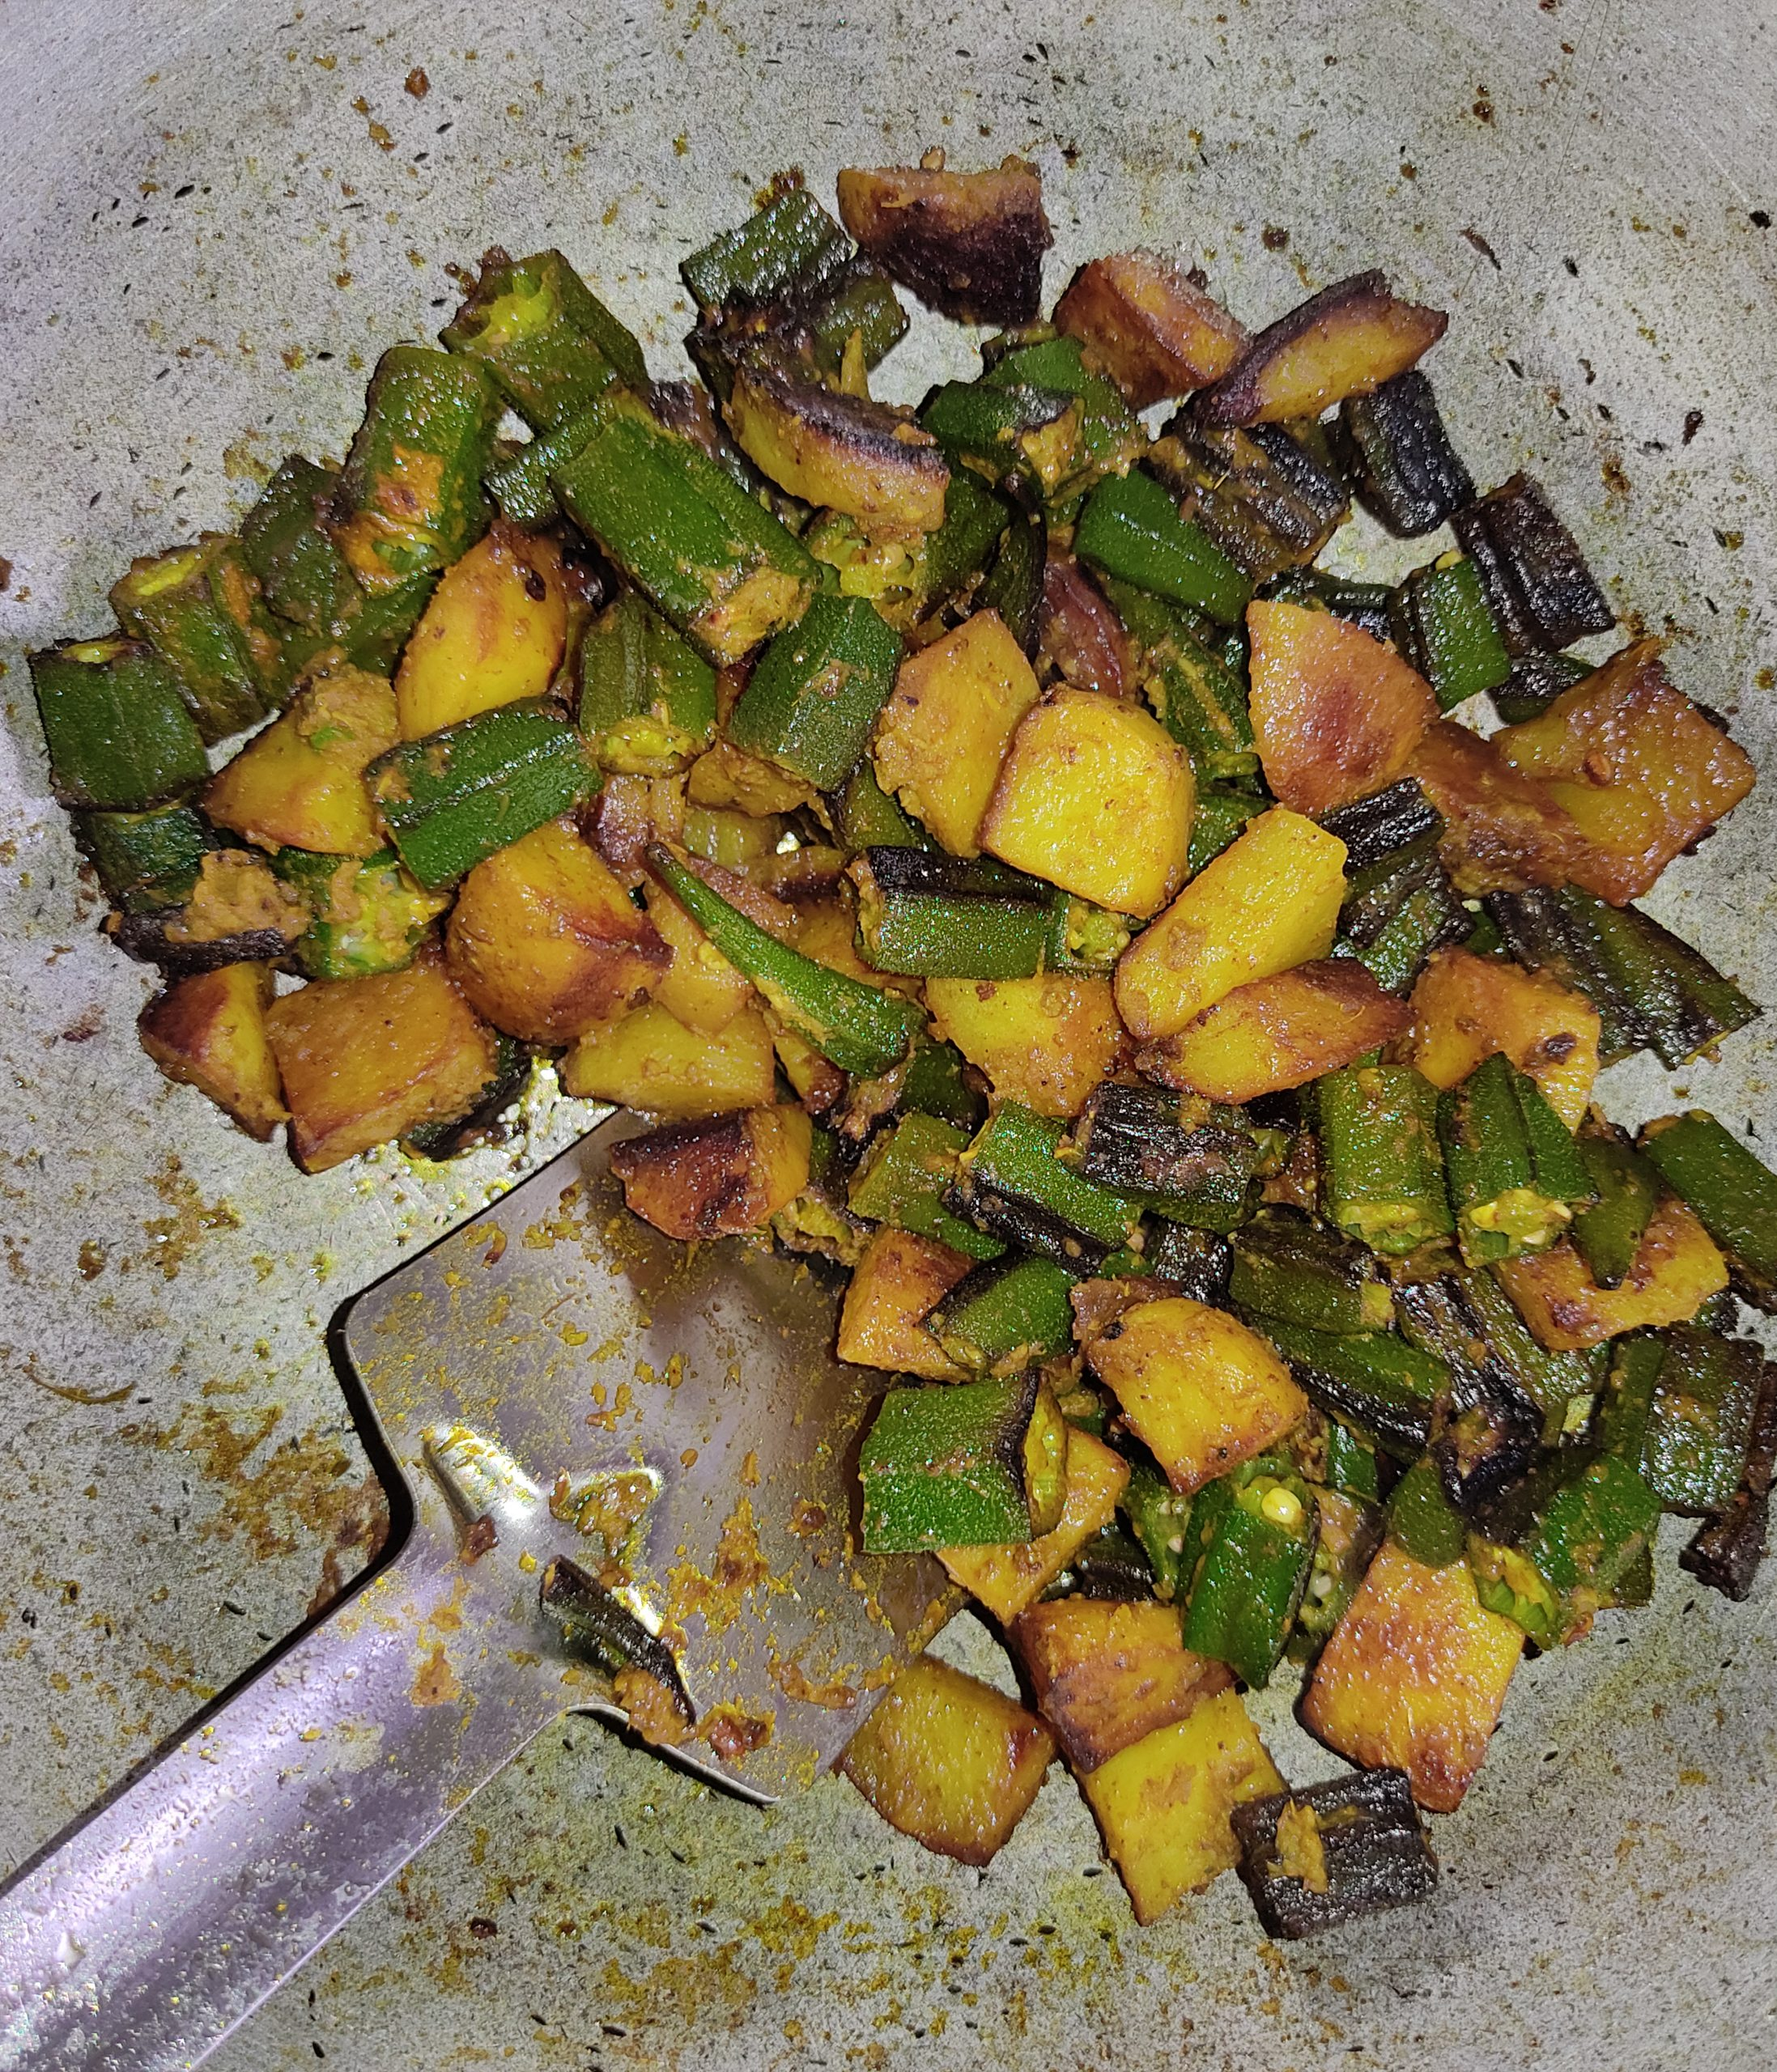 Cooking vegetable at home